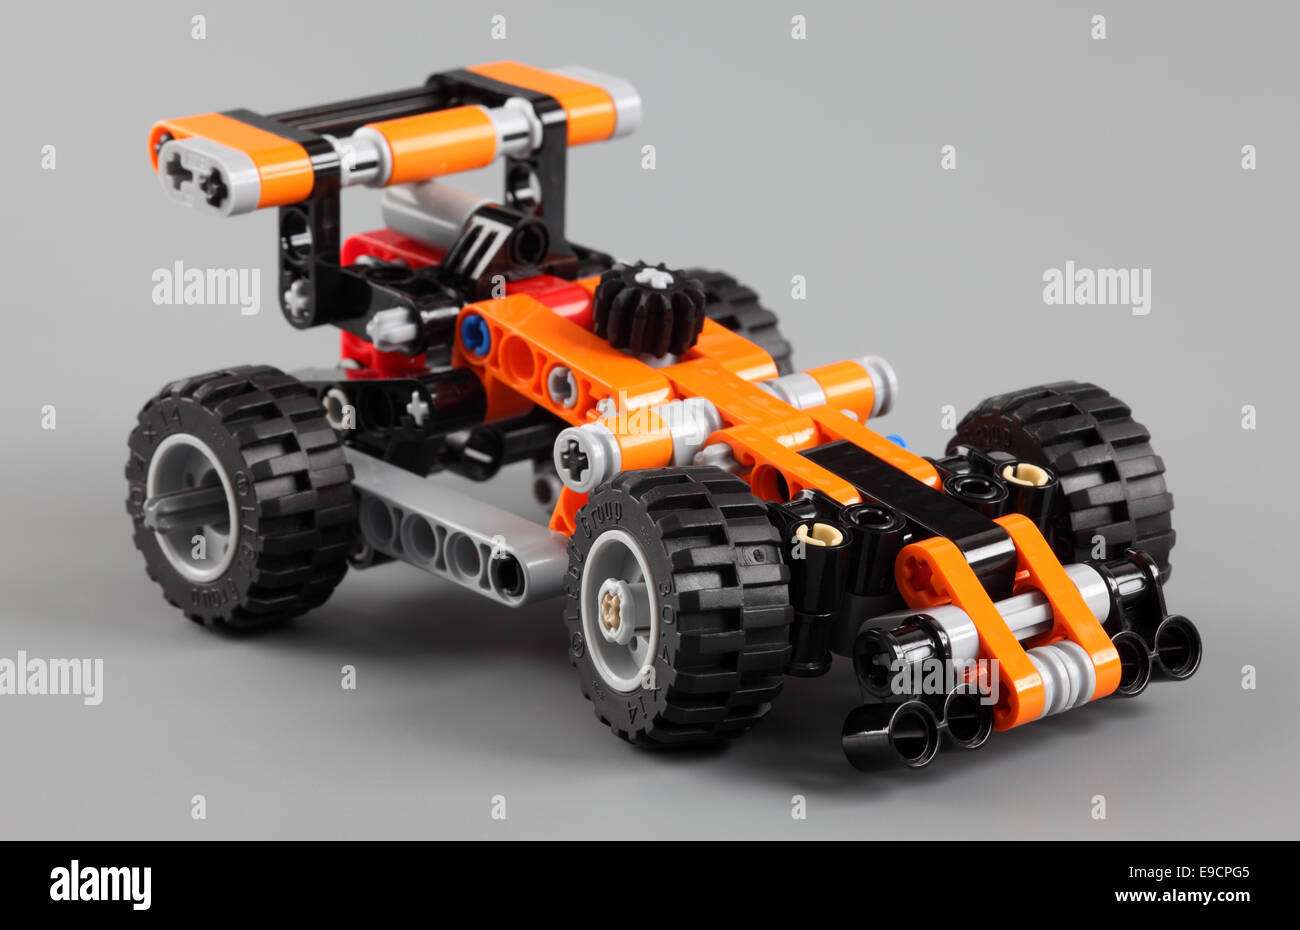 Tambov Russian Federation April 07 2013 Lego Technic Race Car On